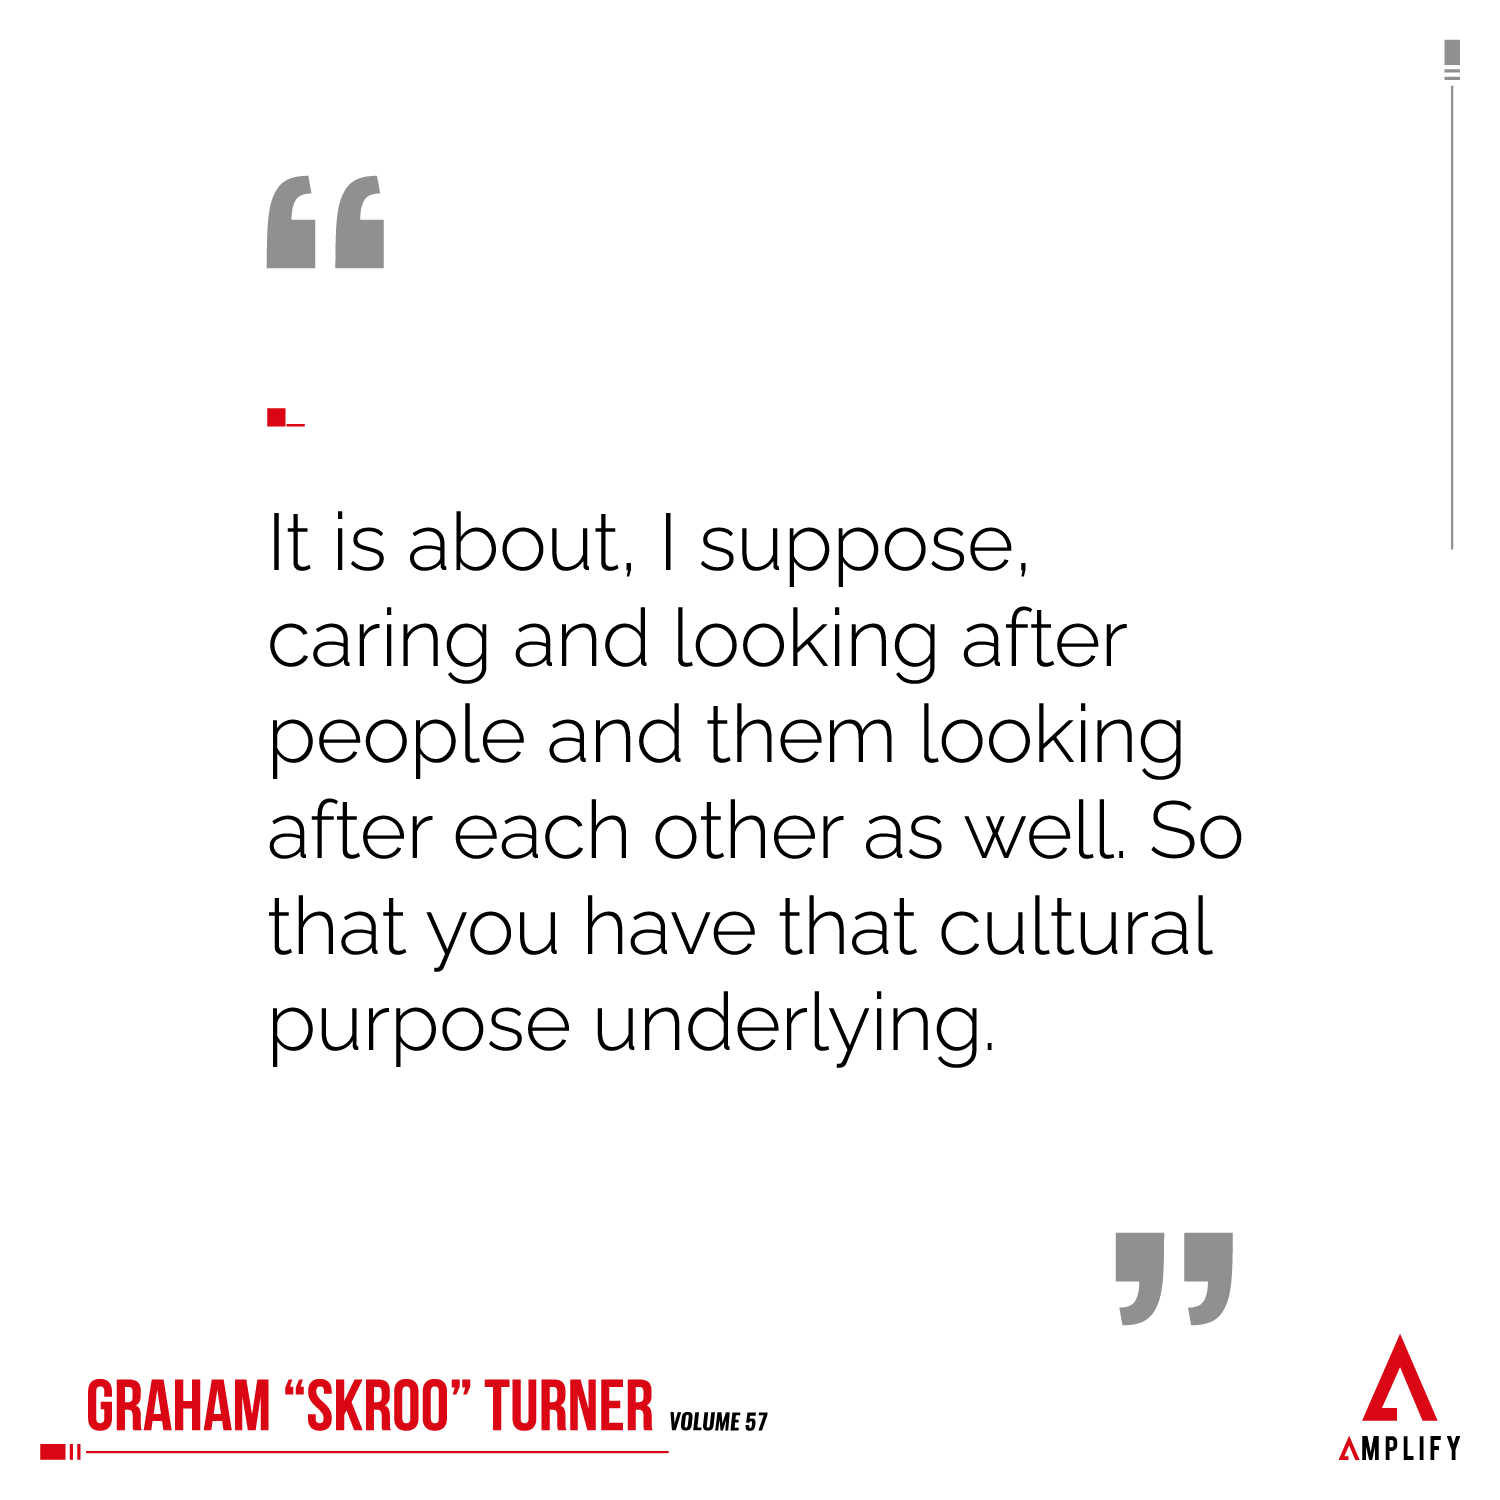 Quote: It is about, I suppose, caring and looking after people and them looking after each other as well. So that you have that cultural purpose underlying.